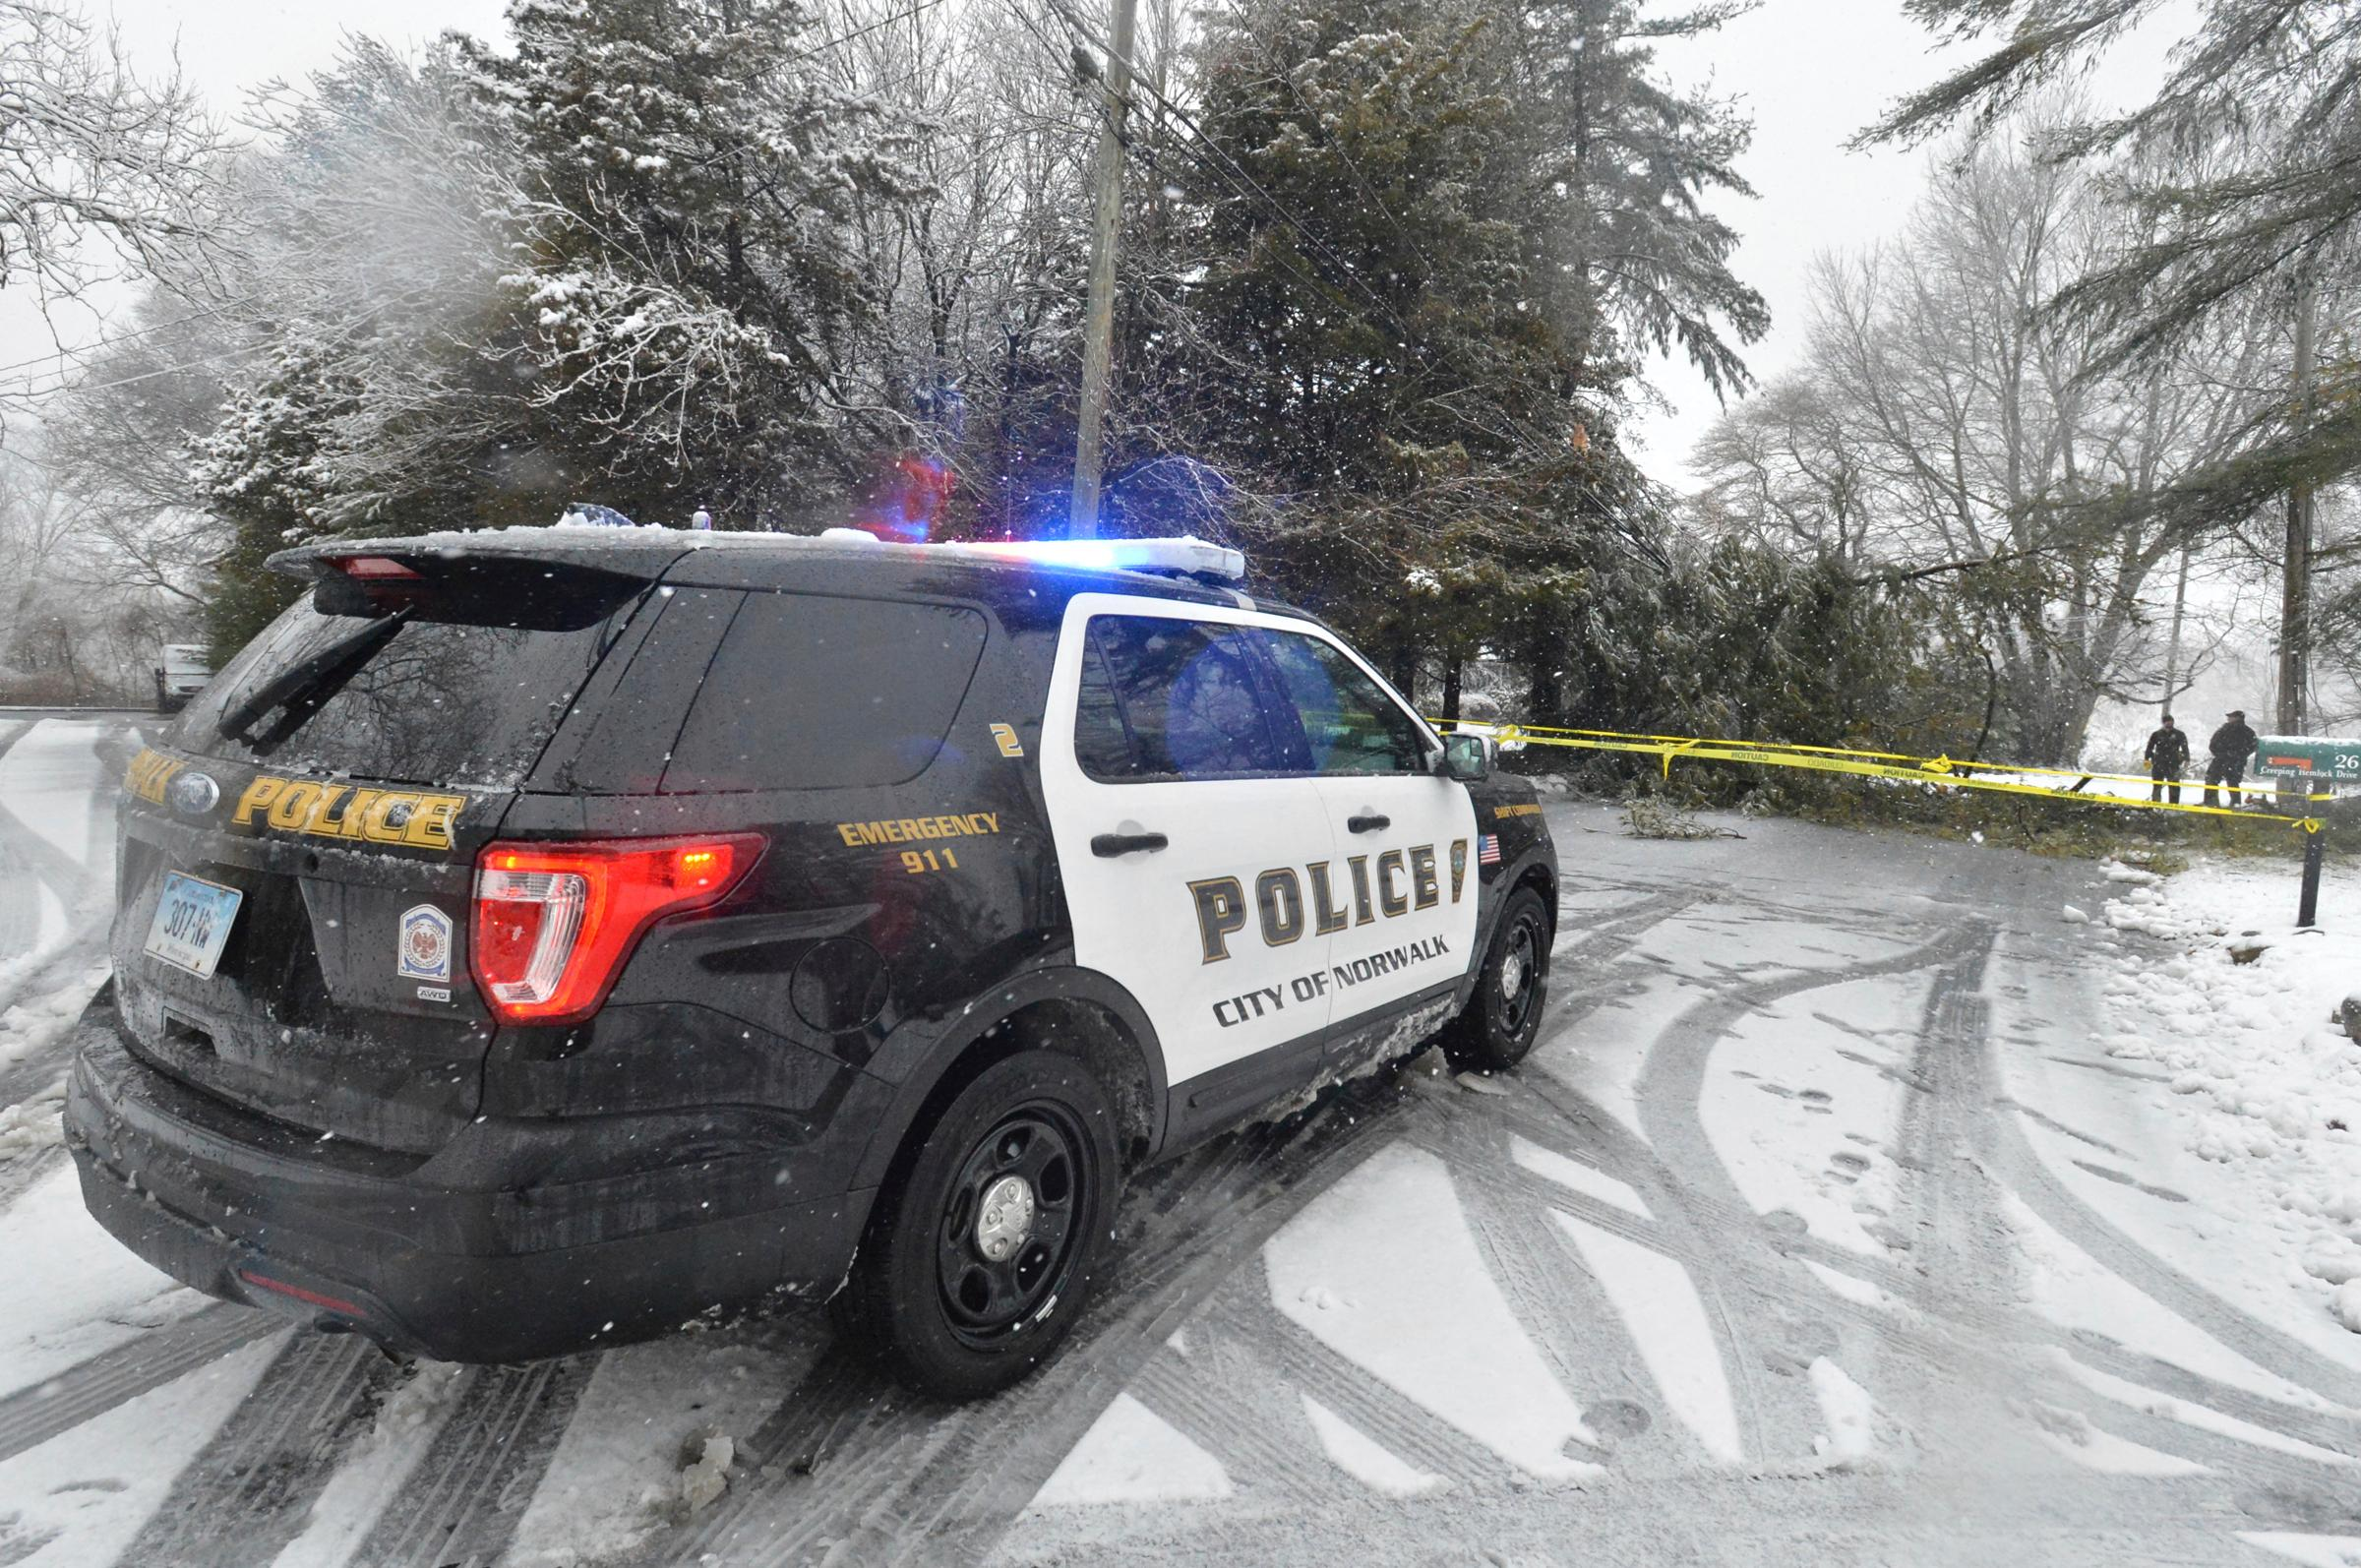 Norwalk Police respond and close Creeping Hemlock Road after a tree fell on wires during the snowstorm on Wednesday, March 7, 2018, in Norwalk, Conn. (Alex von Kleydorff/Hearst Connecticut Media via AP)